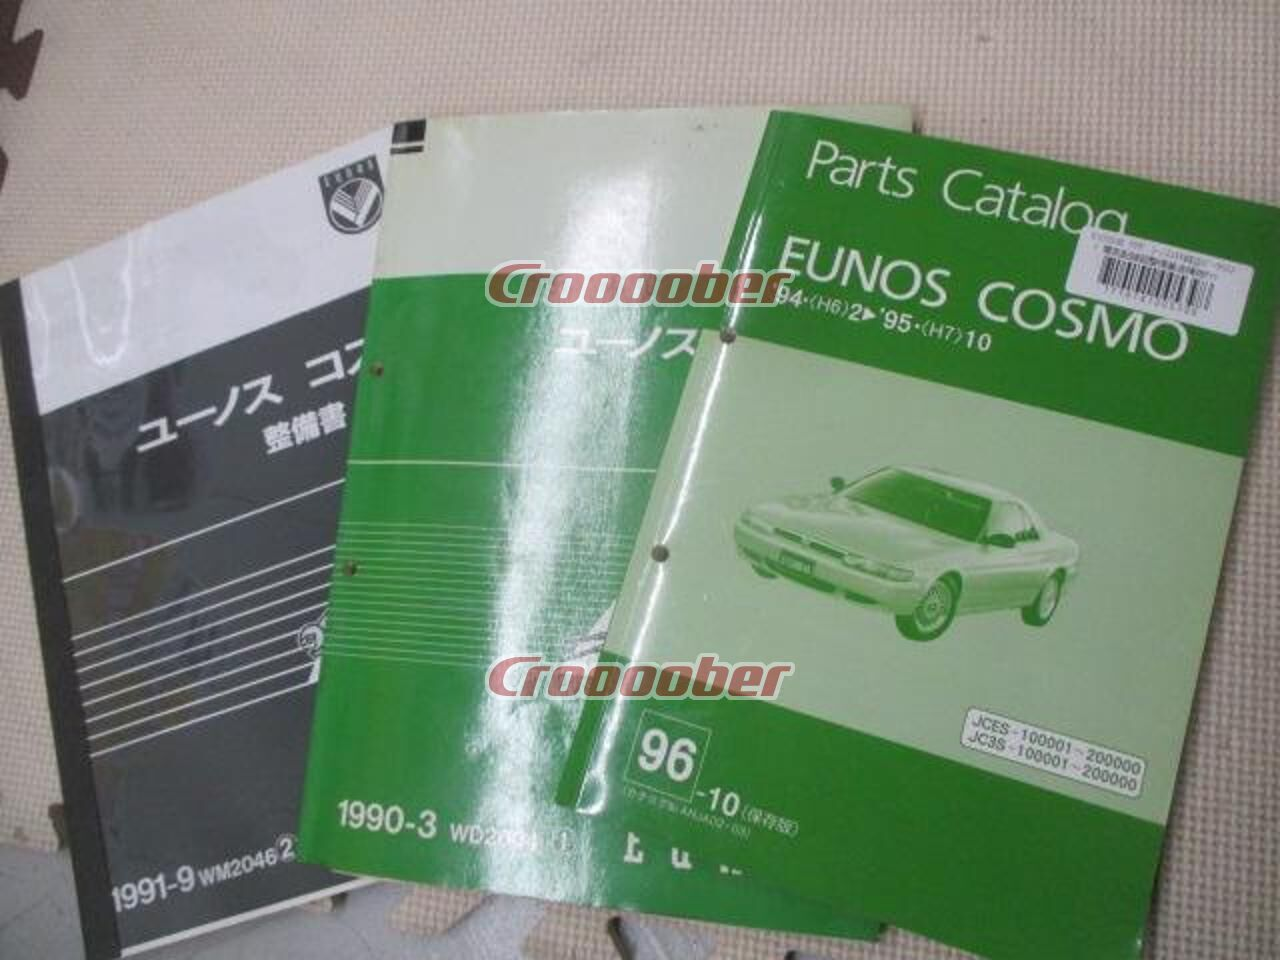 Eunos cosmo genuine parts list electrical wiring diagram additional eunos cosmo genuine parts list electrical wiring diagram additional maintenance volume set cheapraybanclubmaster Images